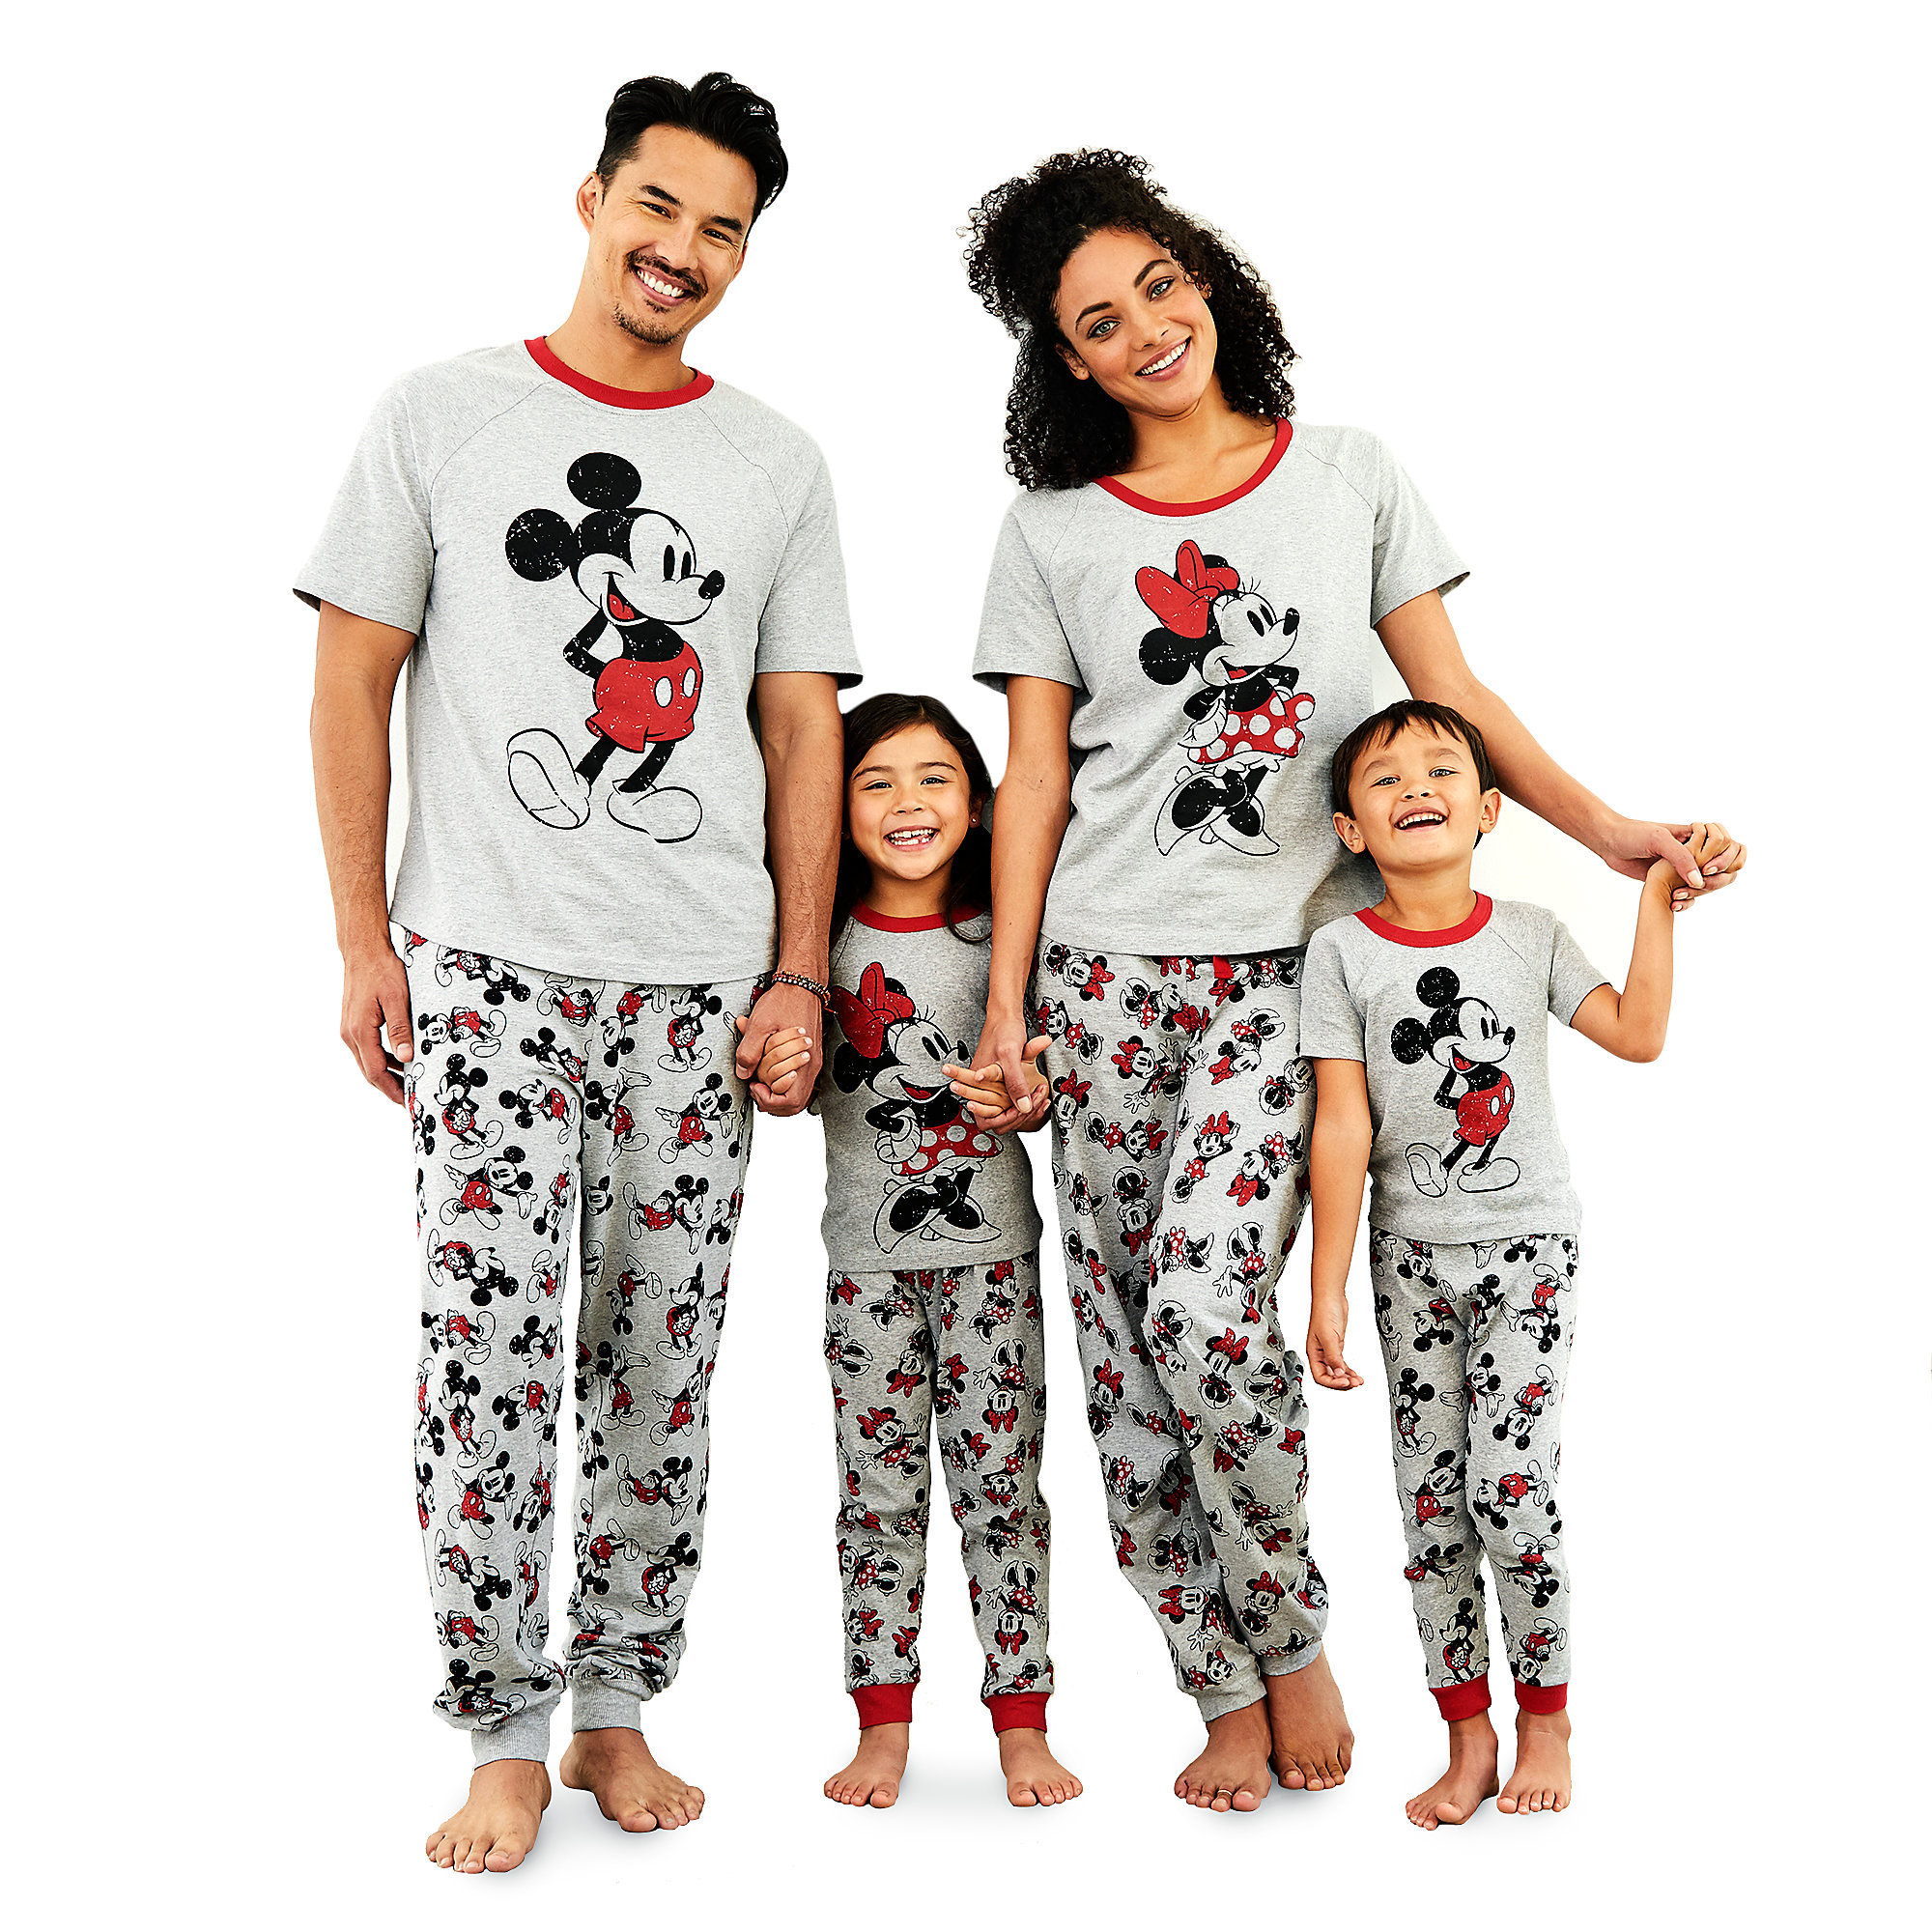 Mickey and Minnie Mouse Family Sleepwear Collection